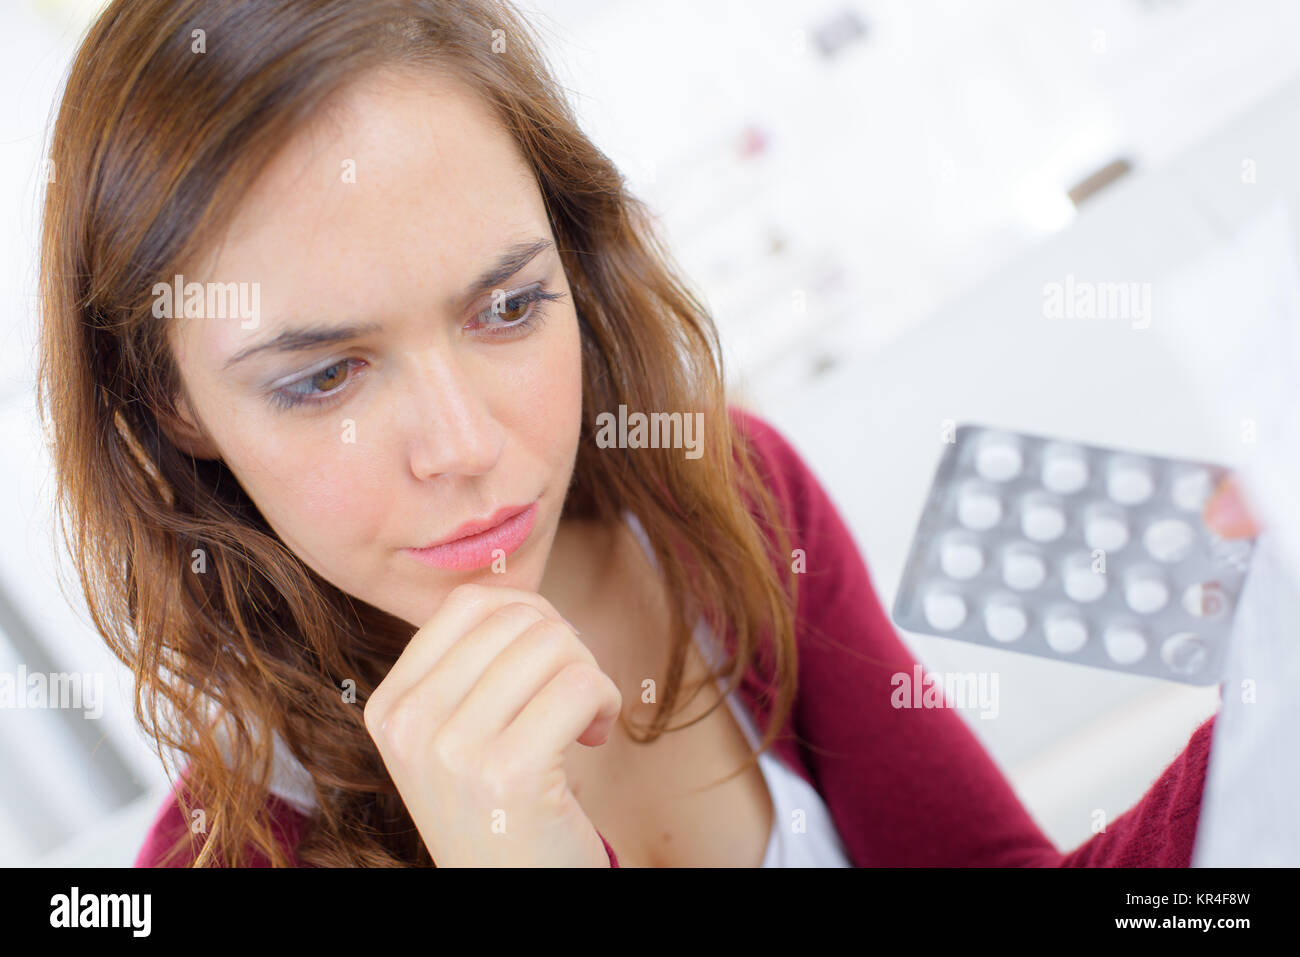 Woman taking a tablet - Stock Image